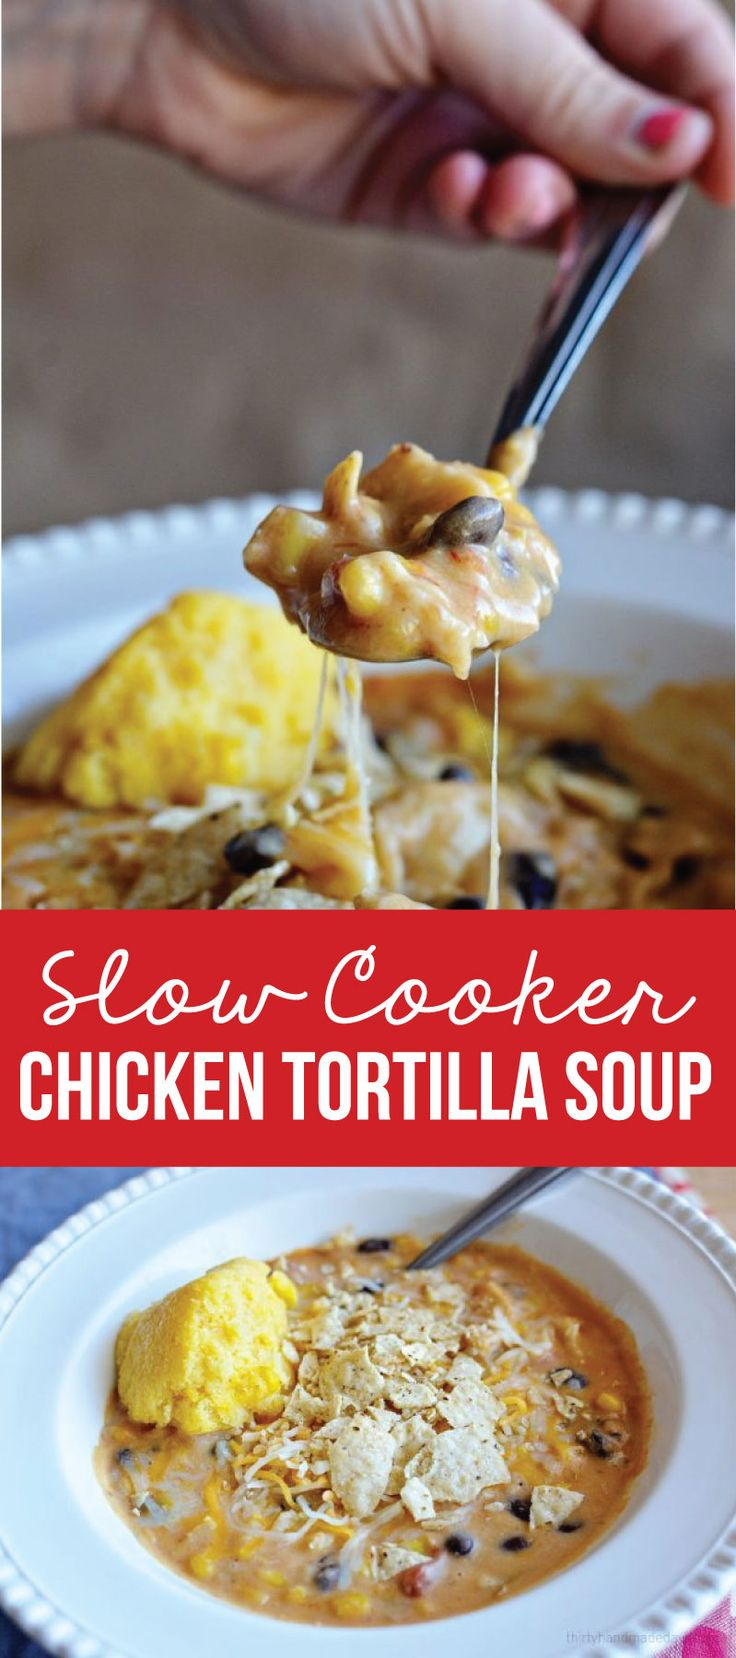 Slow Cooker Chicken Tortilla Soup - simple to make and tastes amazing. A favorite family slow cooker recipe!